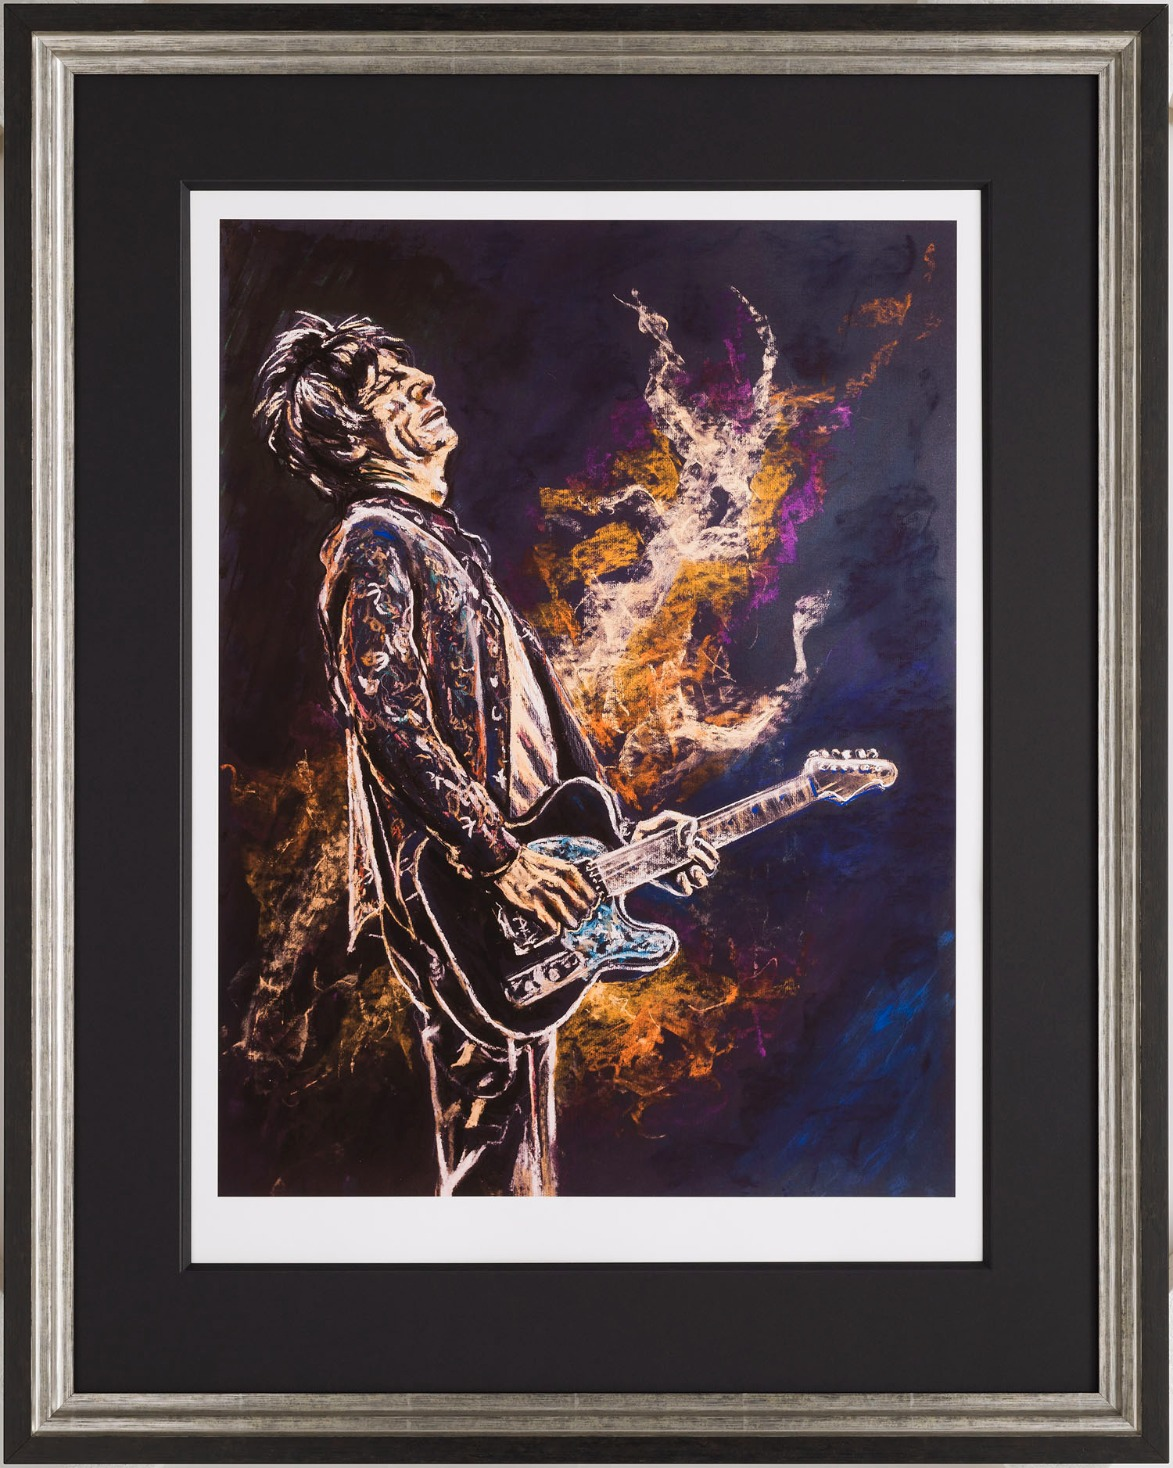 Self Portrait II (Keith) by Ronnie Wood, Book | Pop | Music